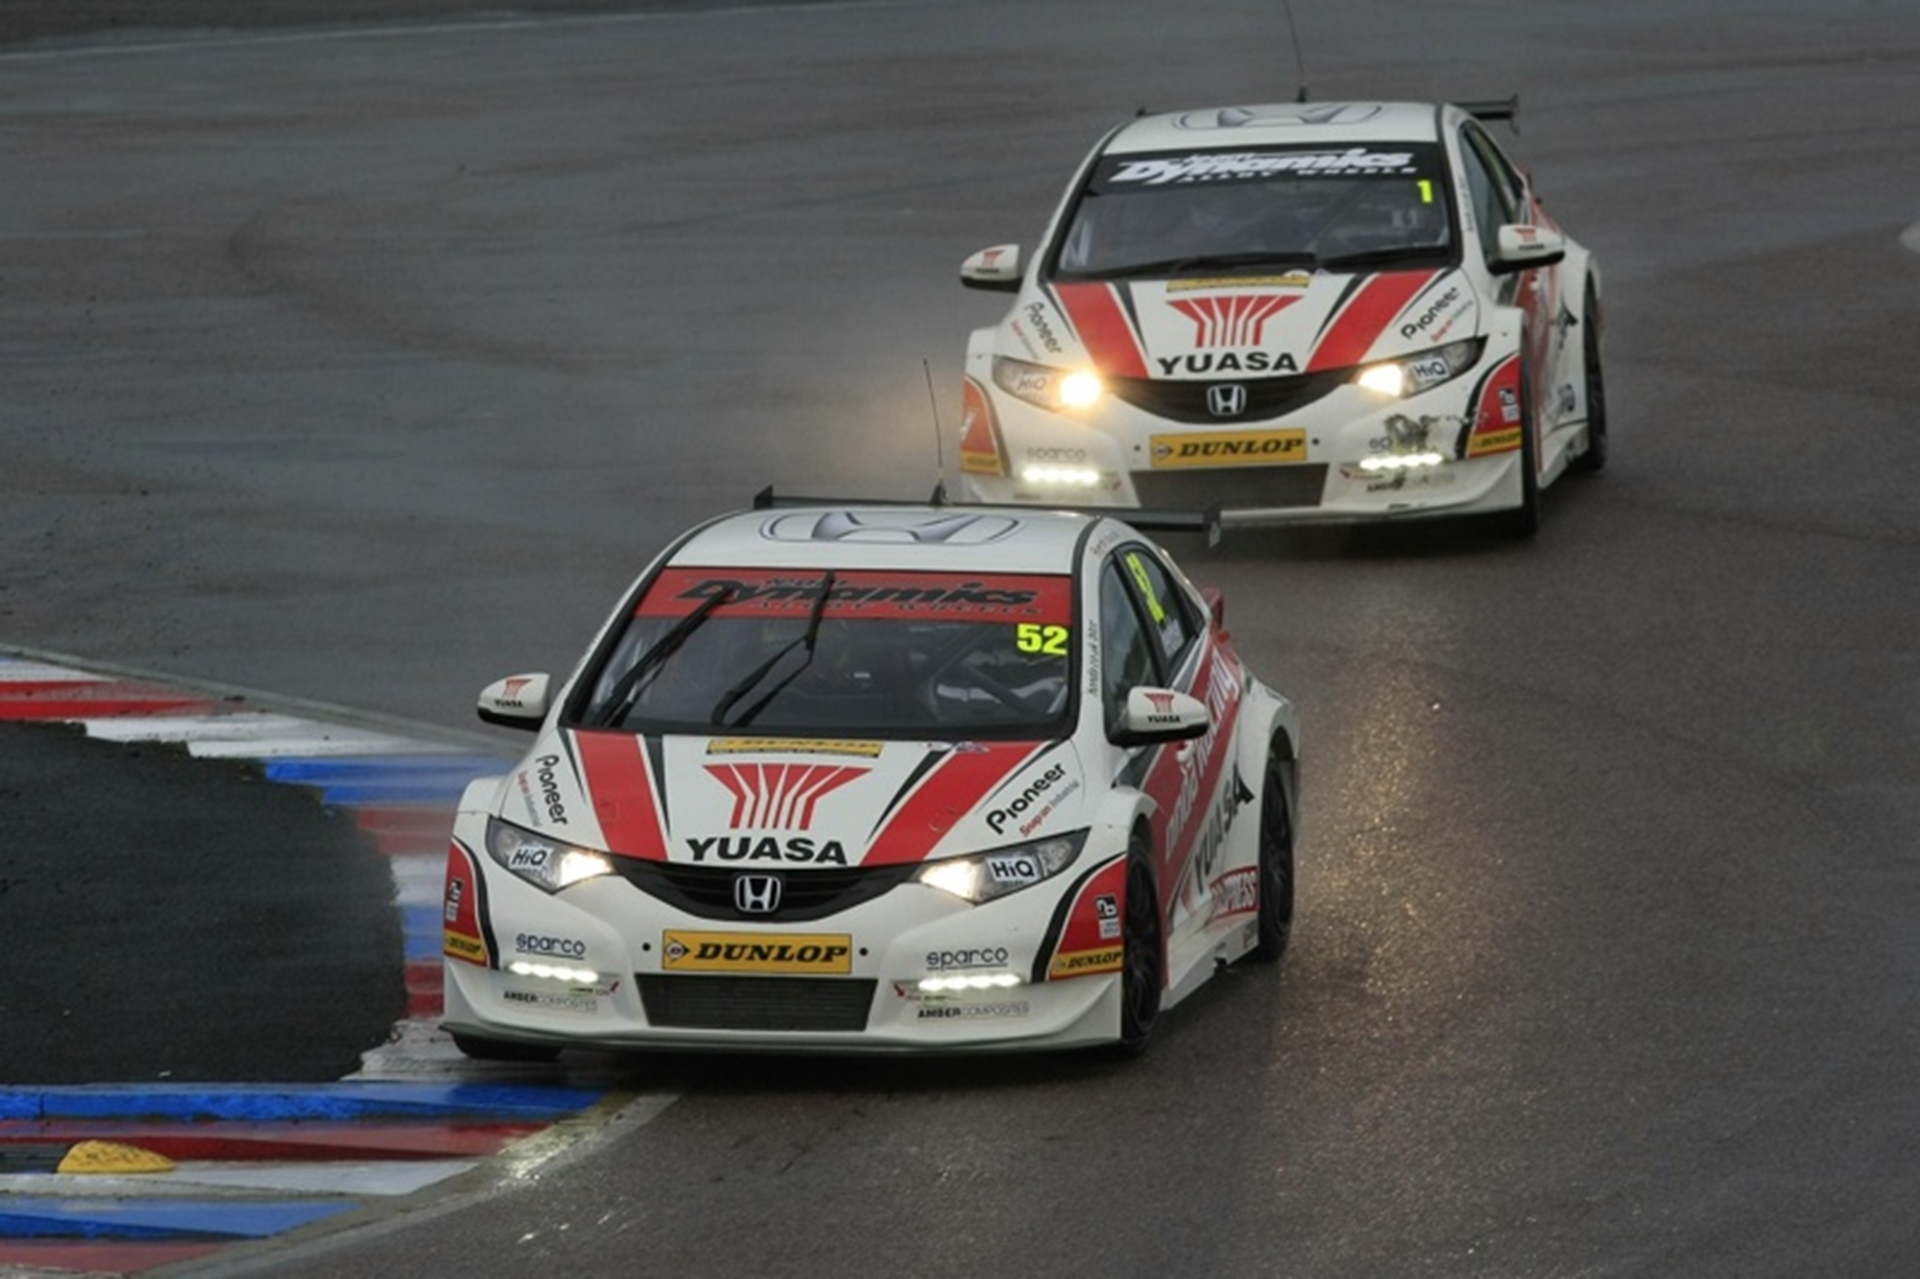 Honda Yuasa Racing at Thruxton